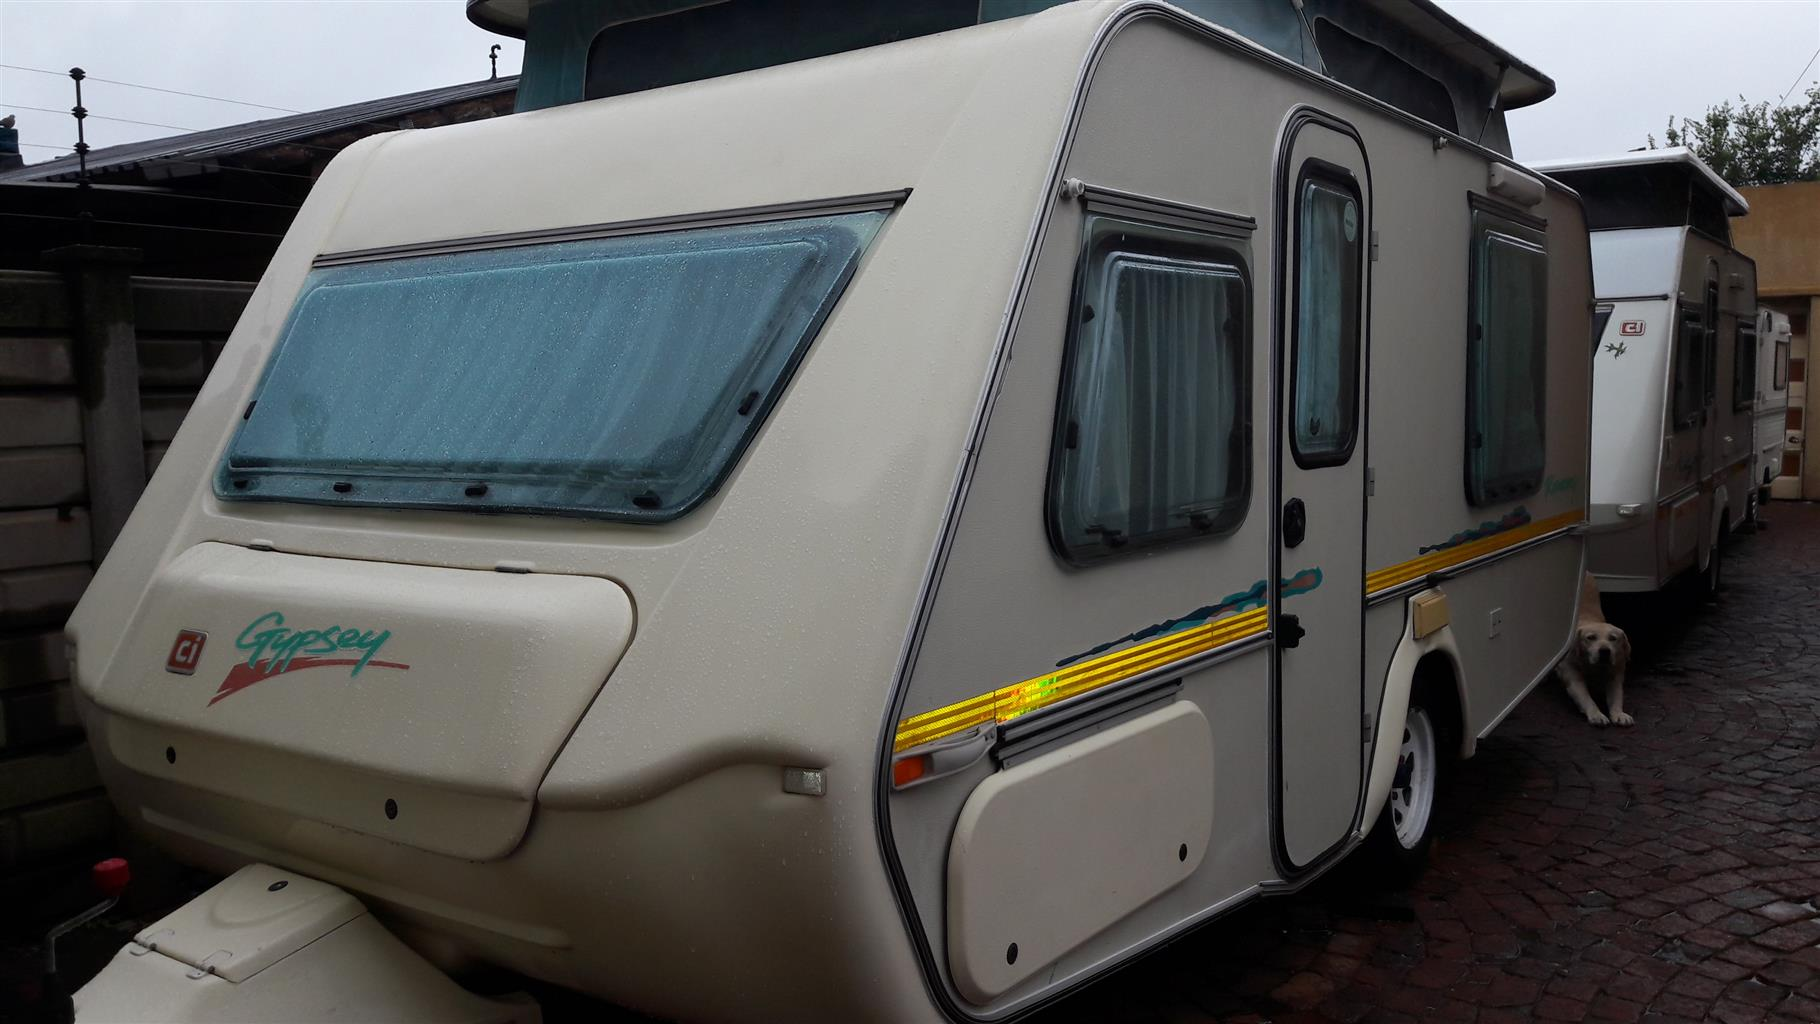 GYPSEY ROMANY 1998 MODEL IN VEREENIGING WITH FULL TENT AND RALLY TENT